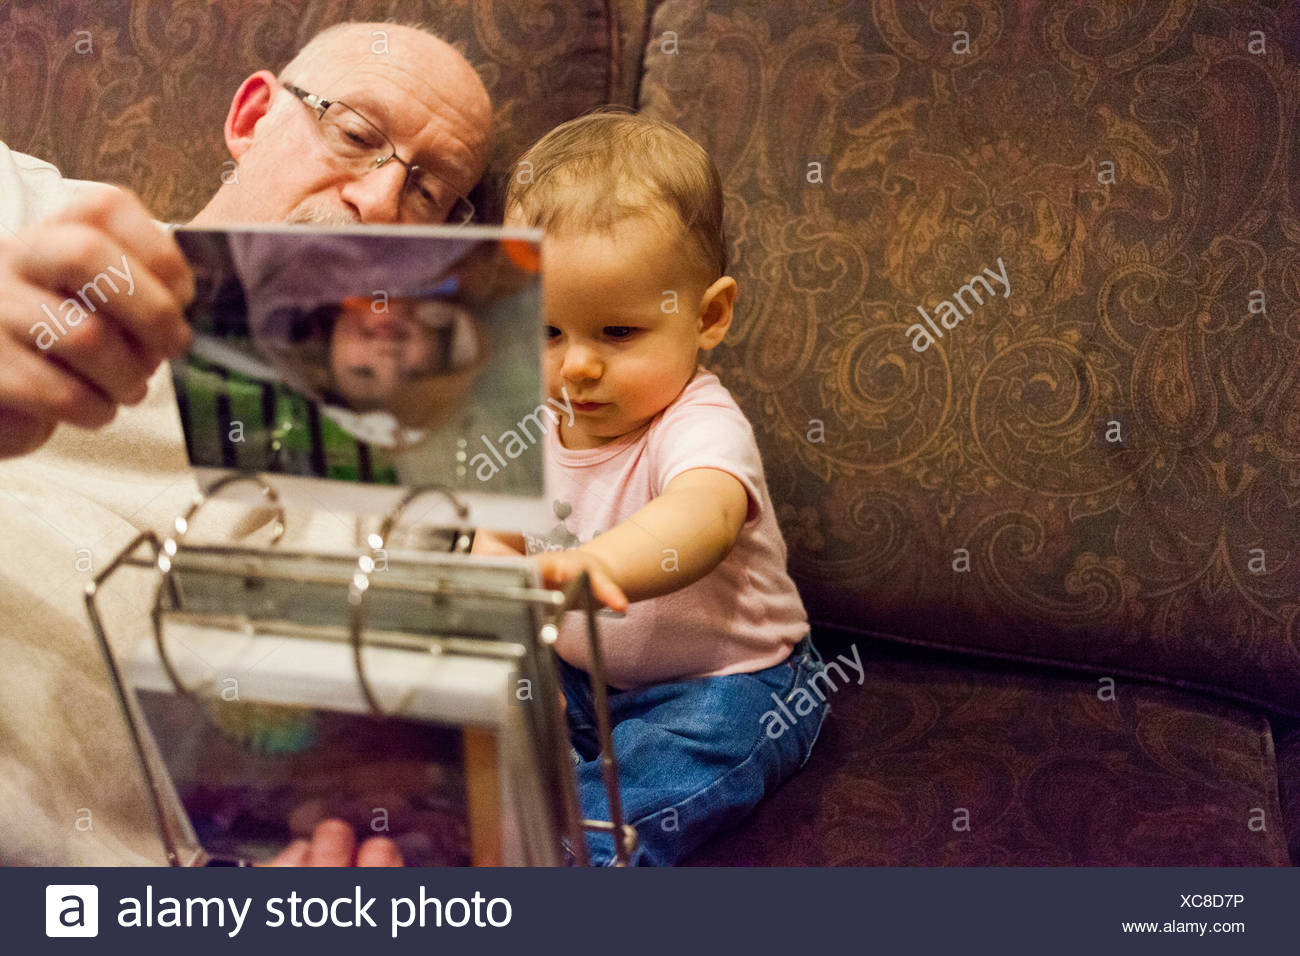 Grandfather and baby granddaughter looking at photo album - Stock Image